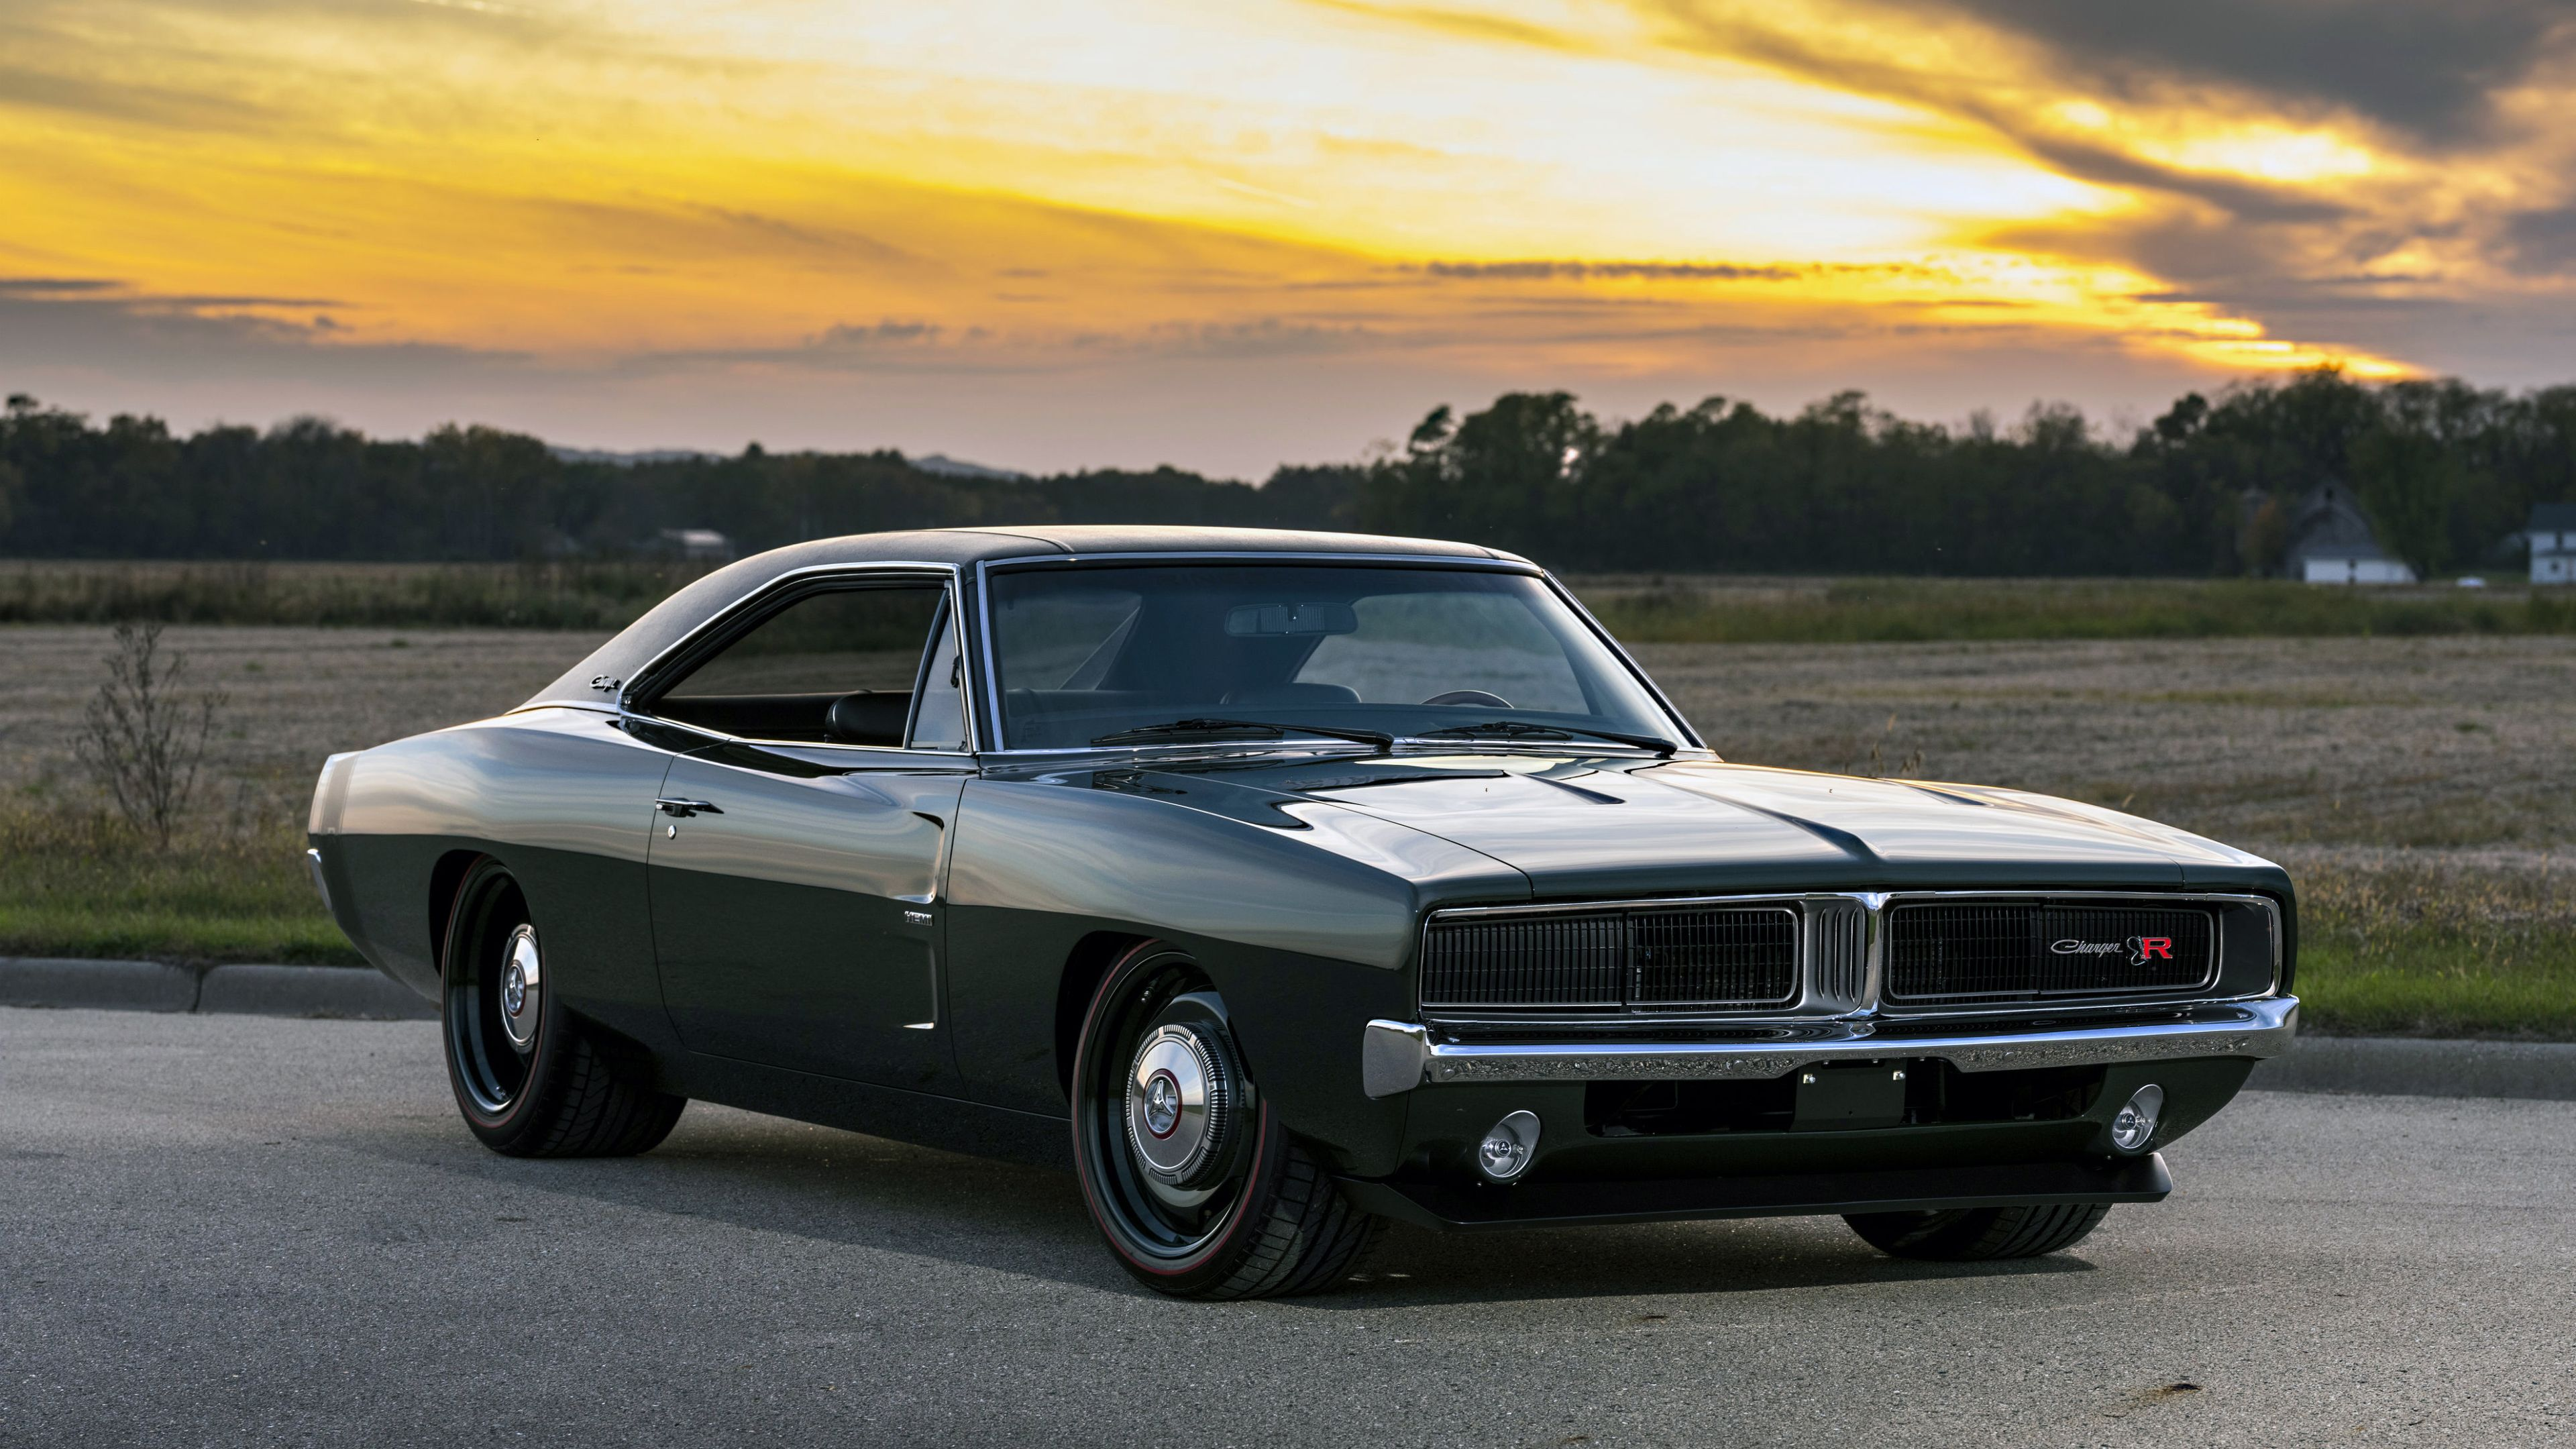 1969 Ringbrothers Dodge Charger Defector Front View hd-wallpapers, dodge charger…